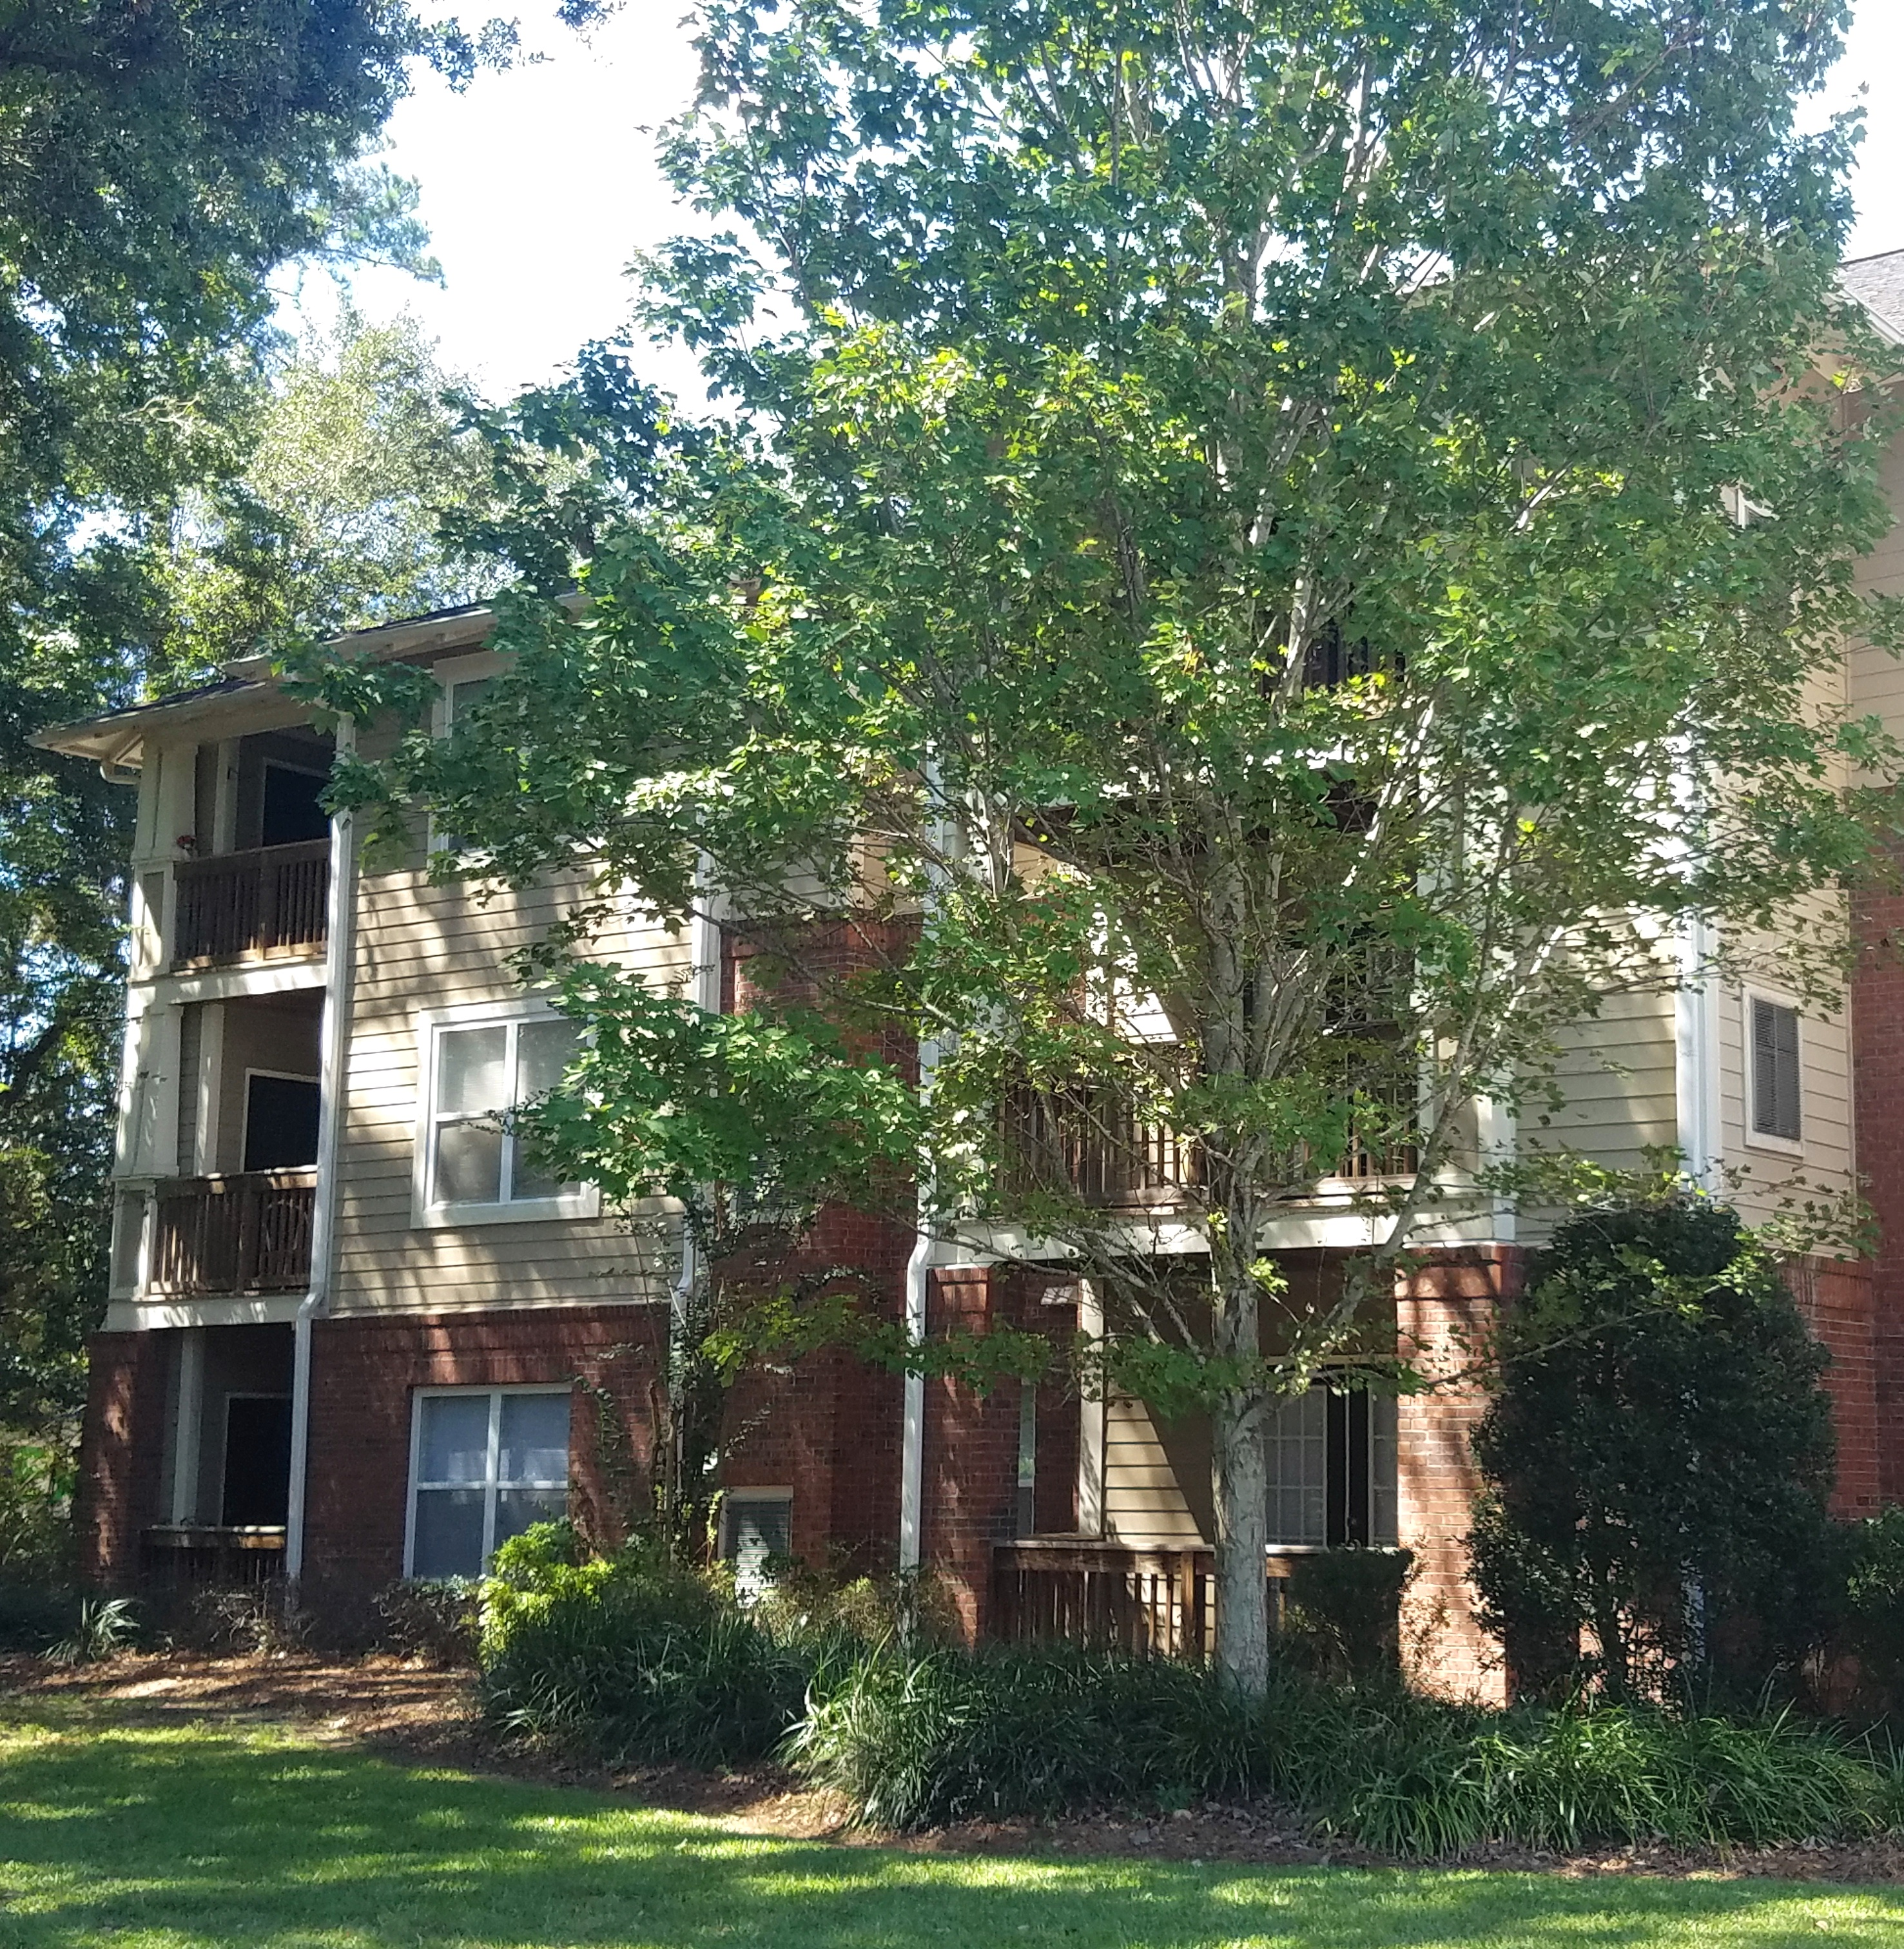 Apartments In Charleston Sc With Utilities Included: Shady Grove Apartments